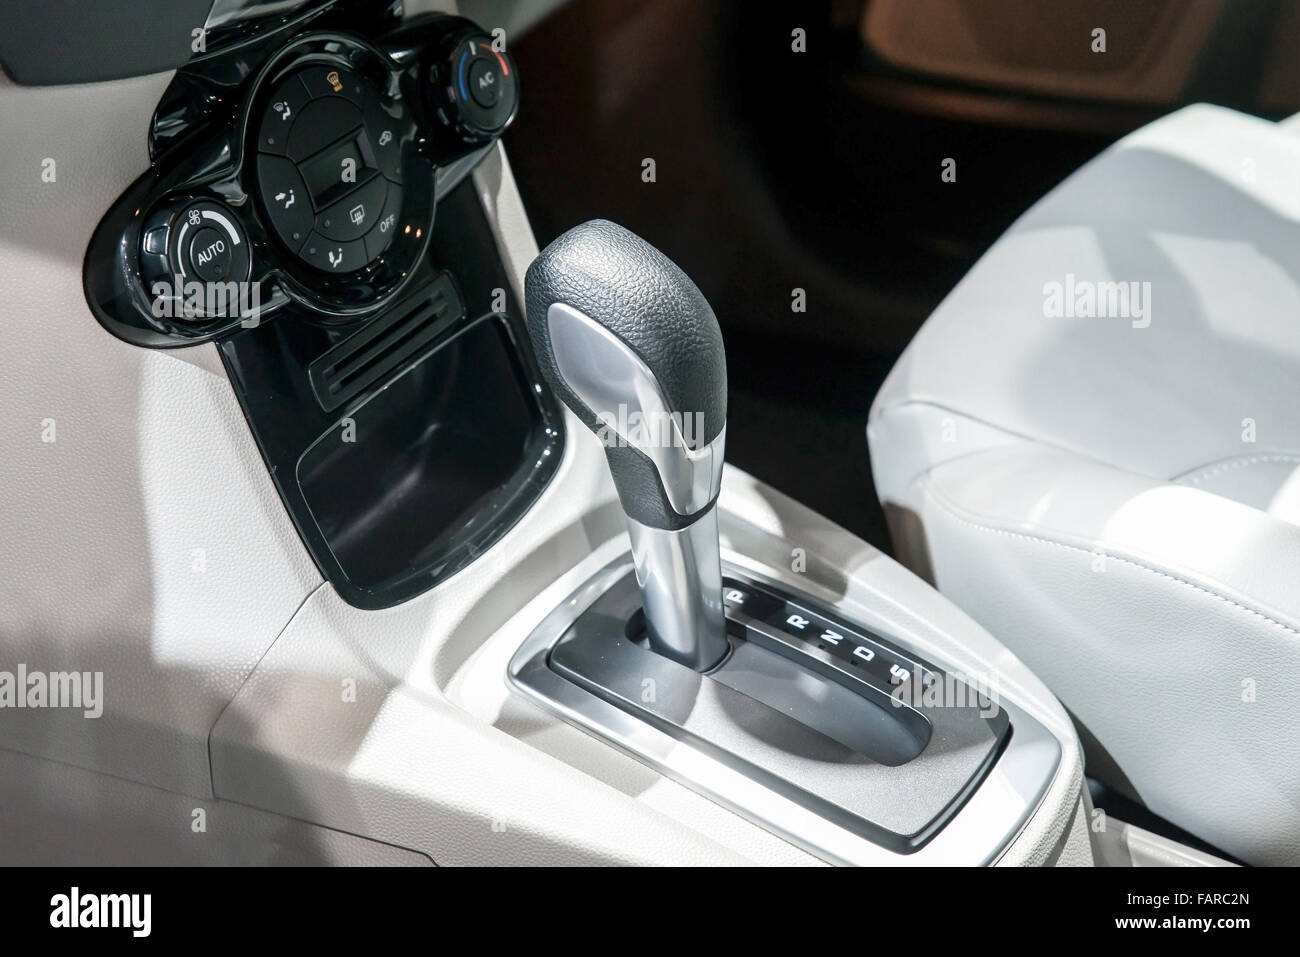 car interior automatic transmission gear shift and air conditioning stock photo royalty free. Black Bedroom Furniture Sets. Home Design Ideas